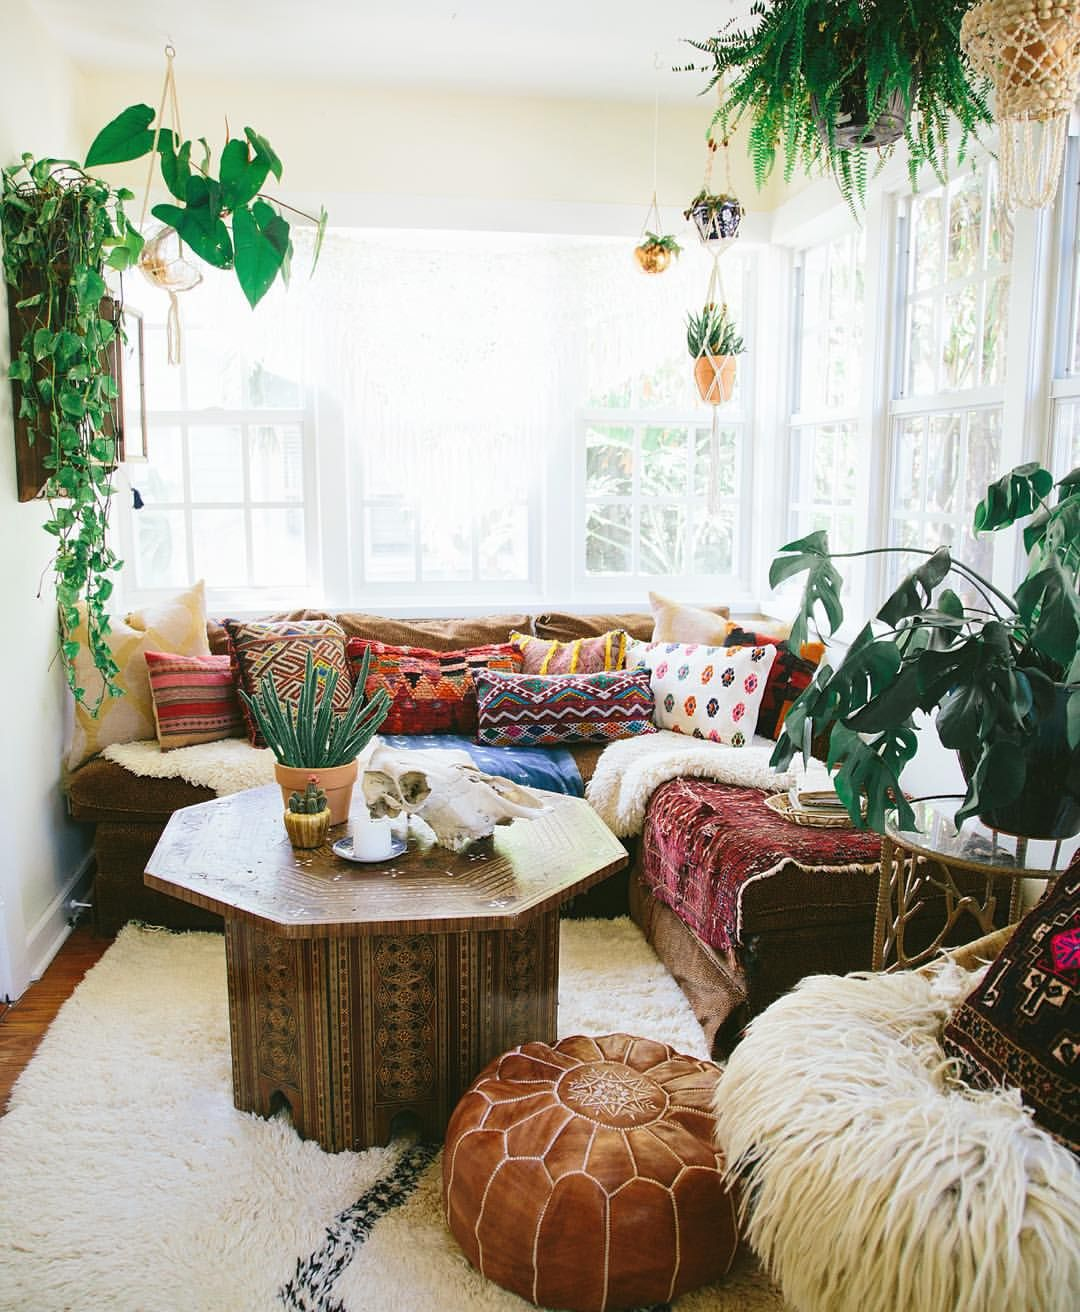 Finding peace in my little neverland.#bohostyle #bohemiandecor - a little too much stuff, but the ideas are good